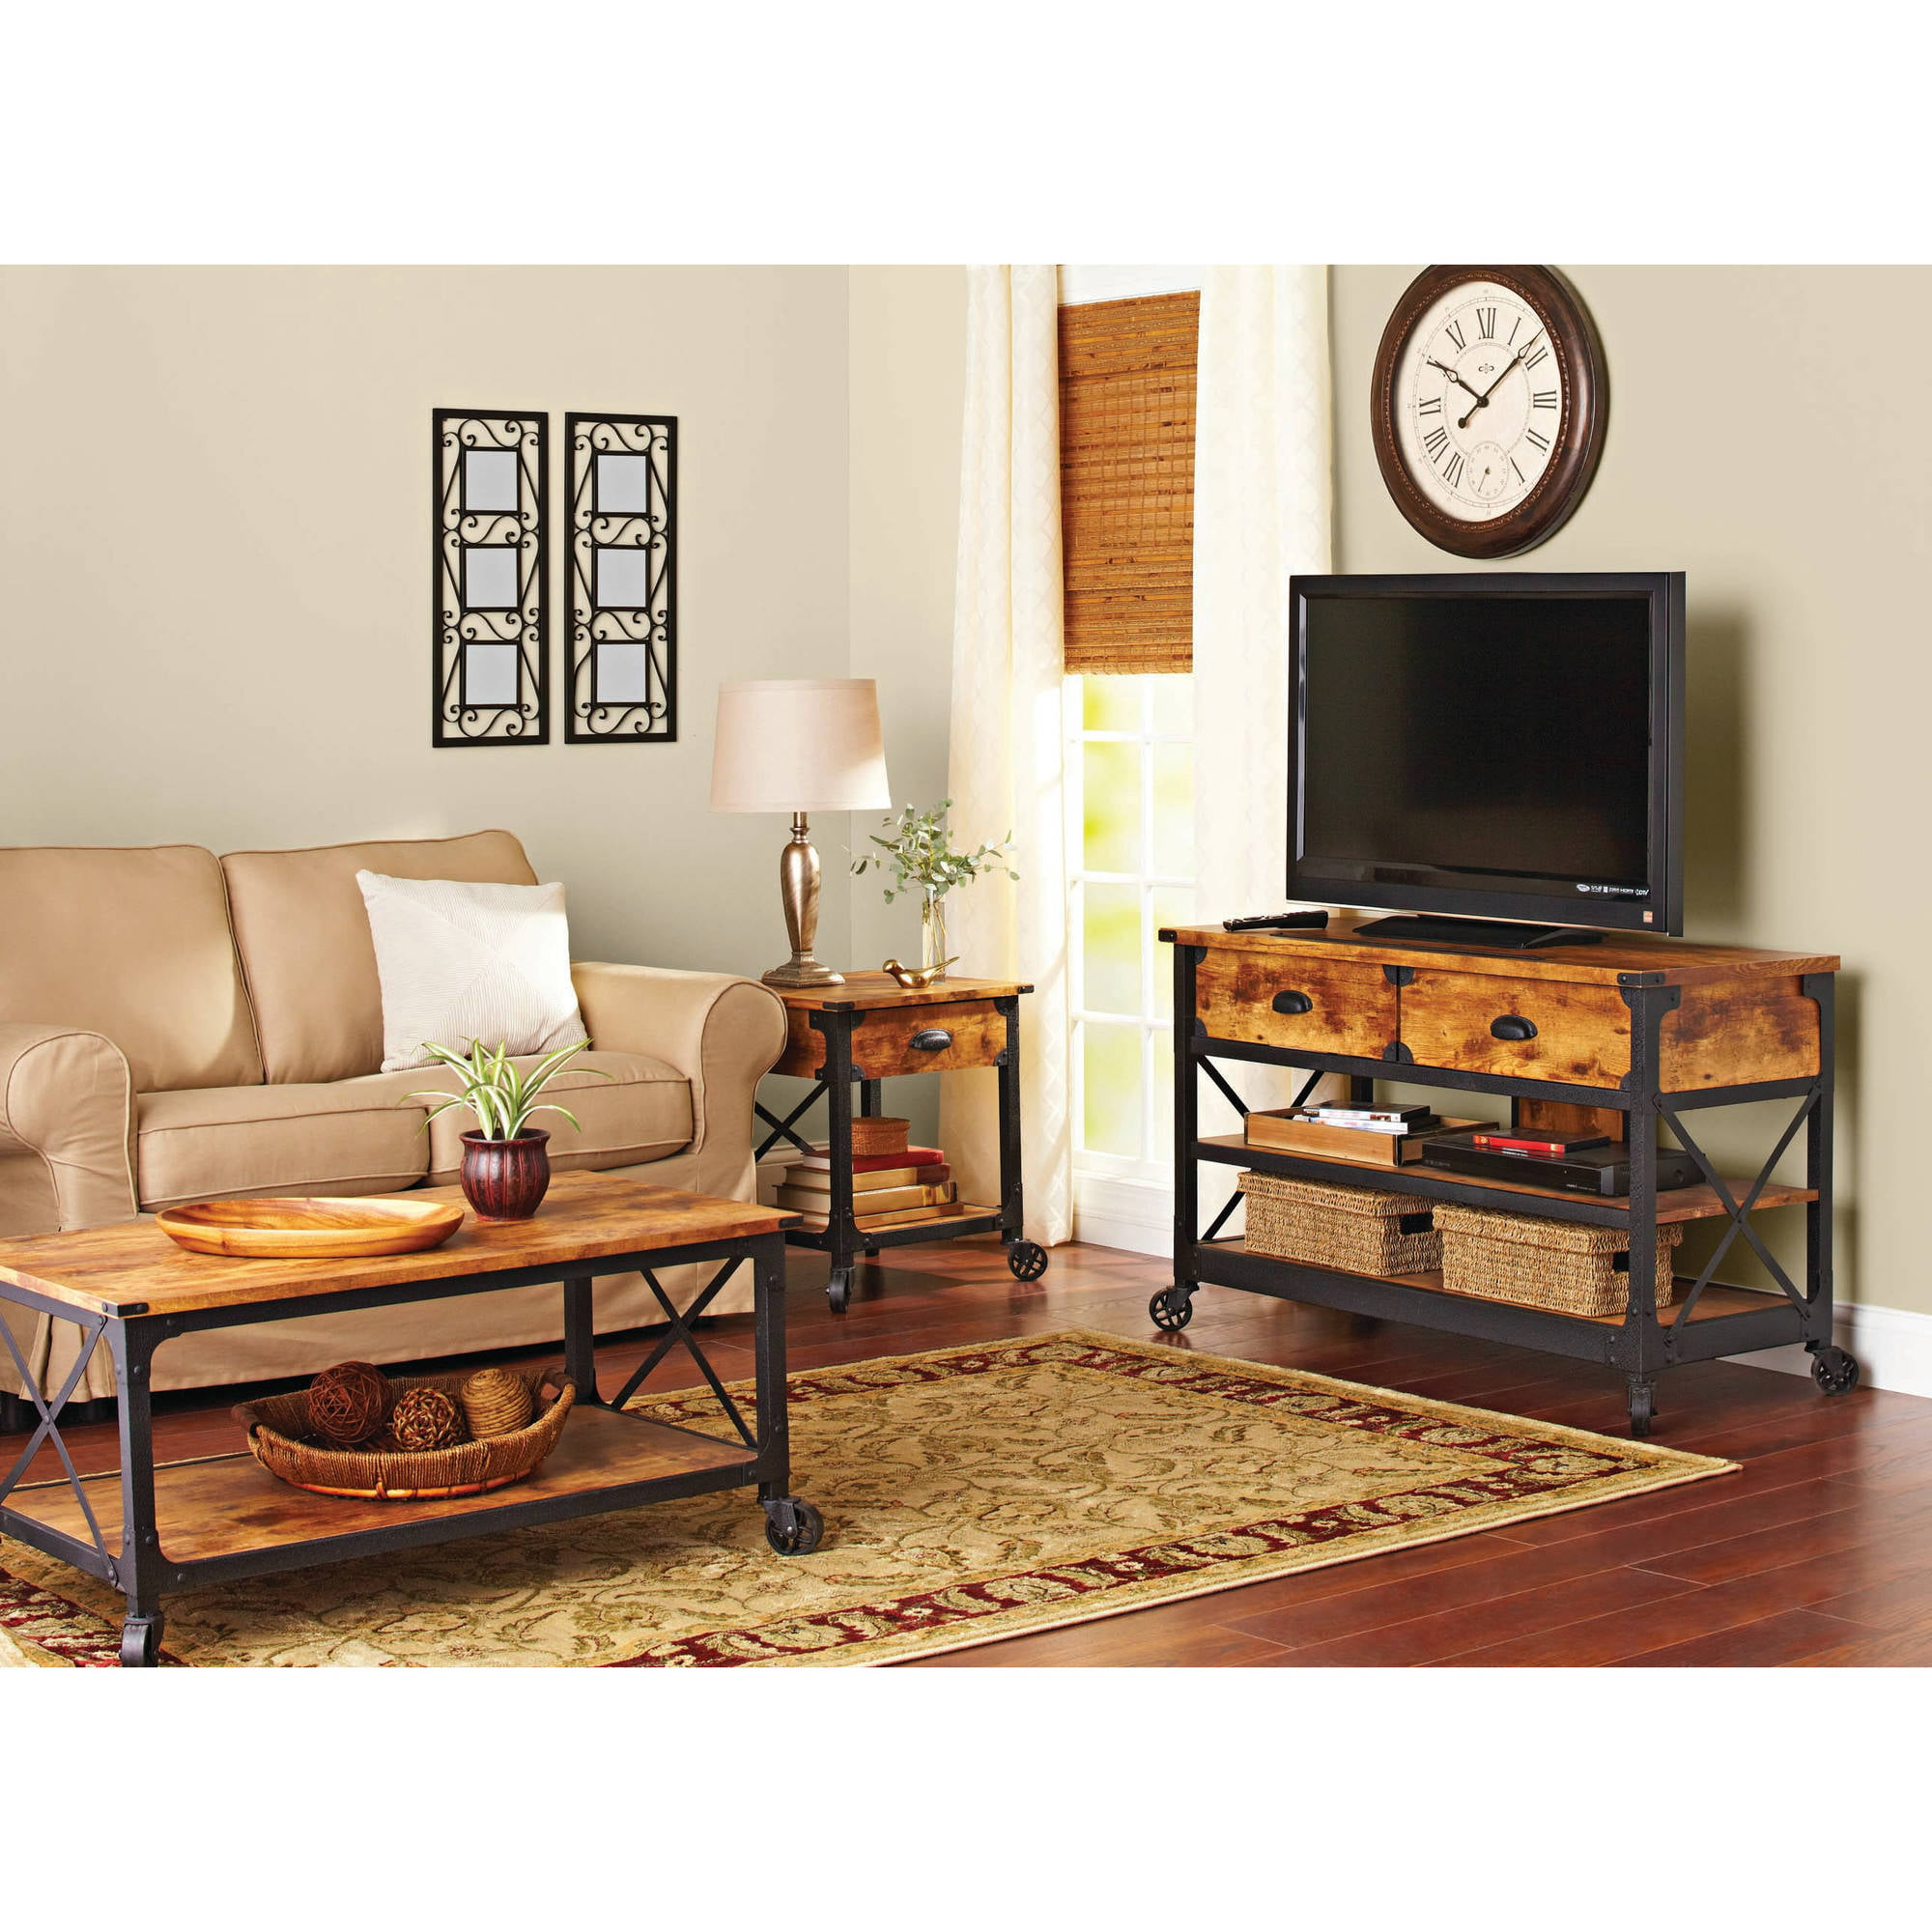 Better Homes And Gardens Rustic Country Living Room Set Walmart Com